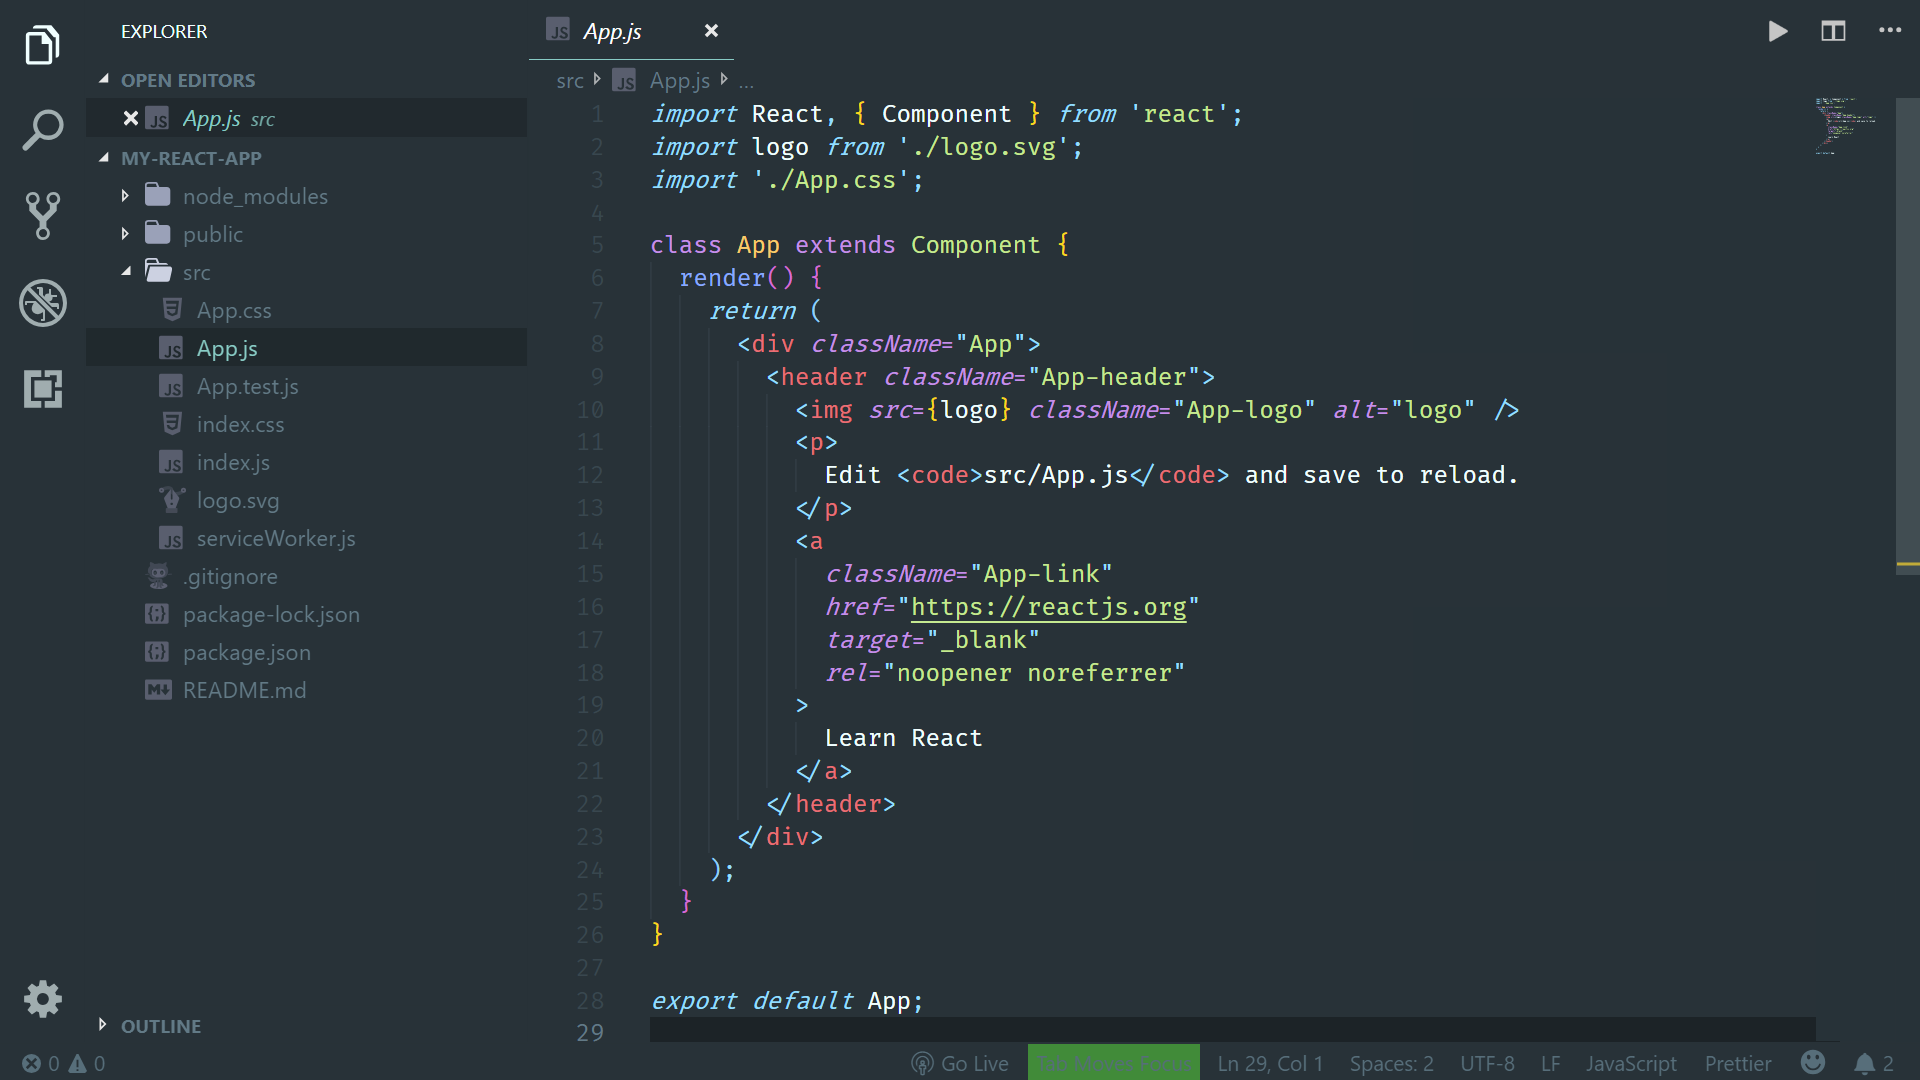 A Guide to Beautifying Visual Studio Code - Bret Cameron